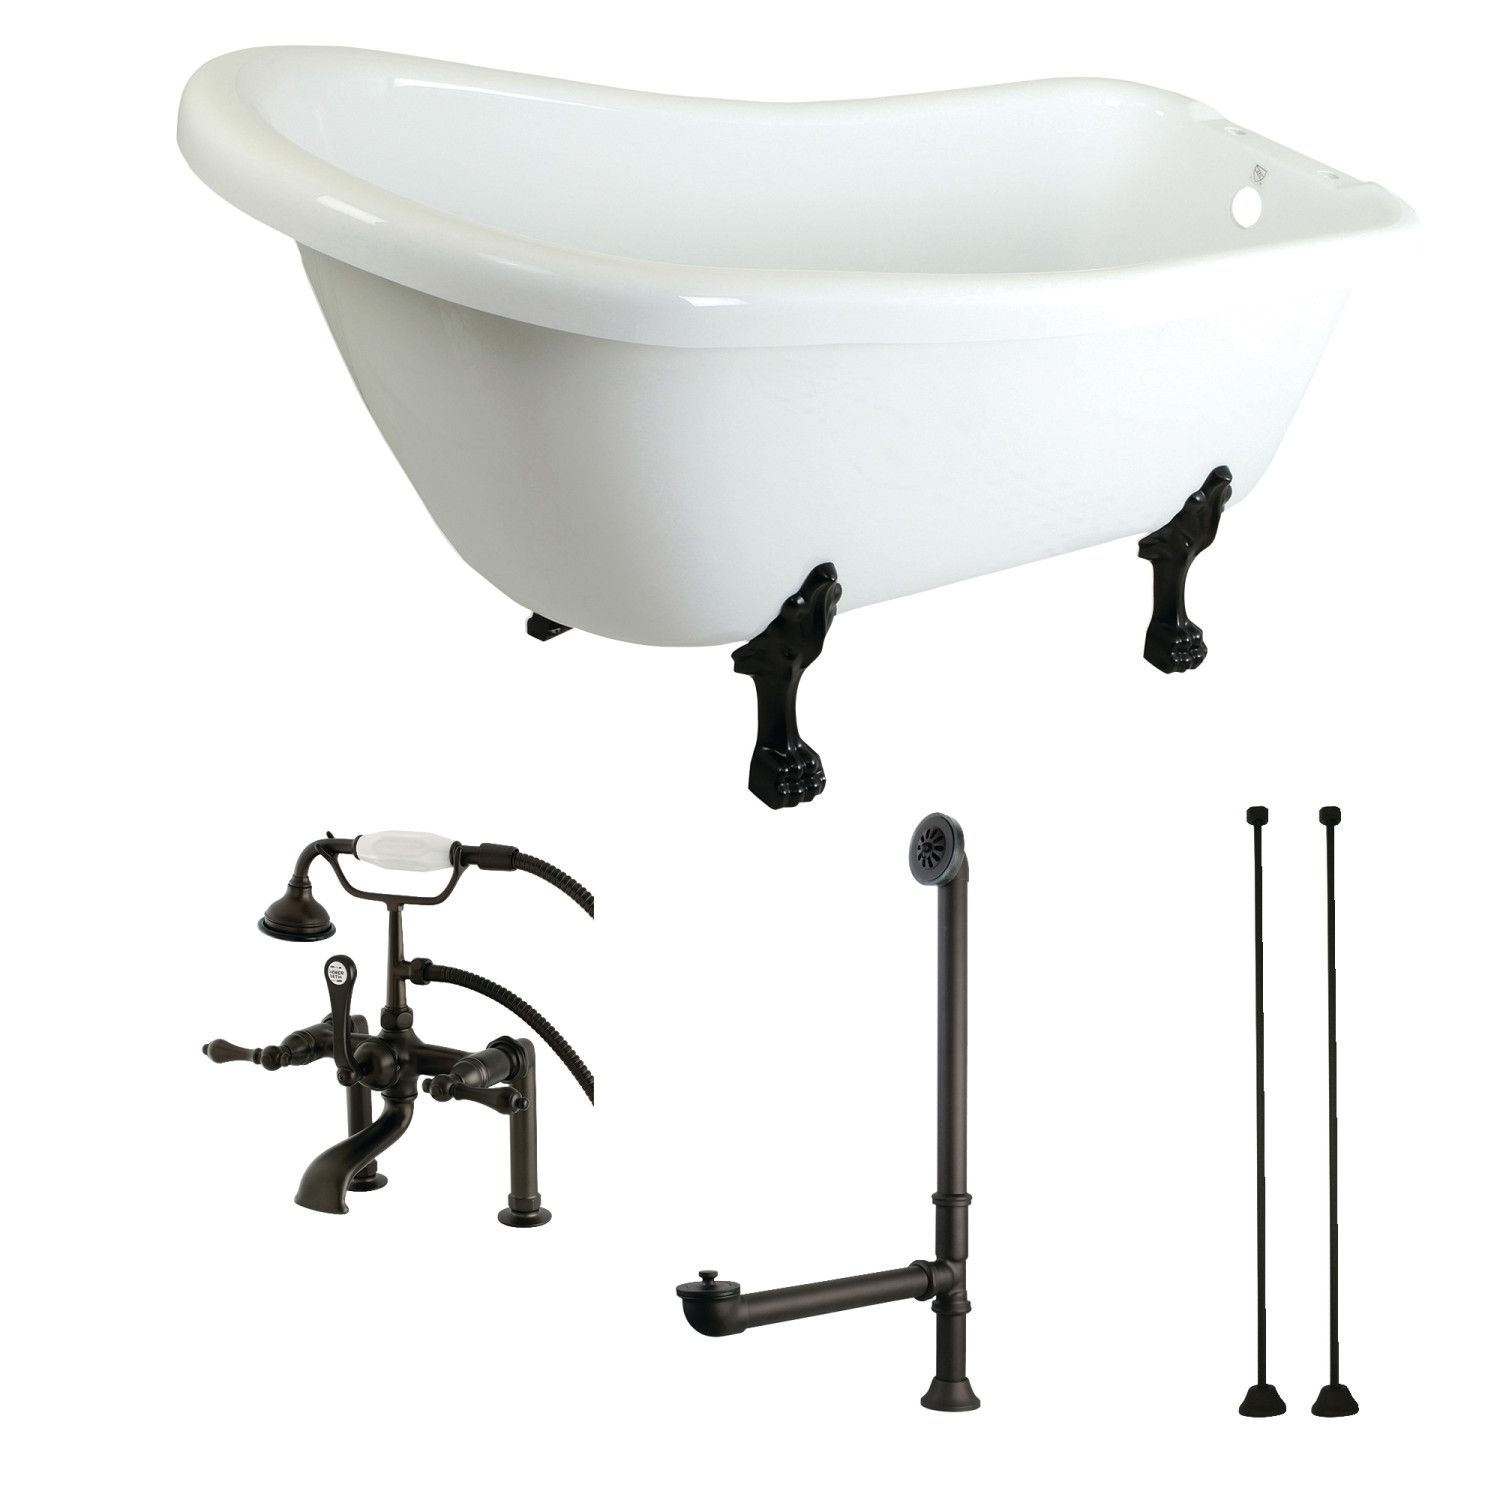 Aqua Eden 67 Inch Acrylic Clawfoot Tub With Faucet Drain And Supply